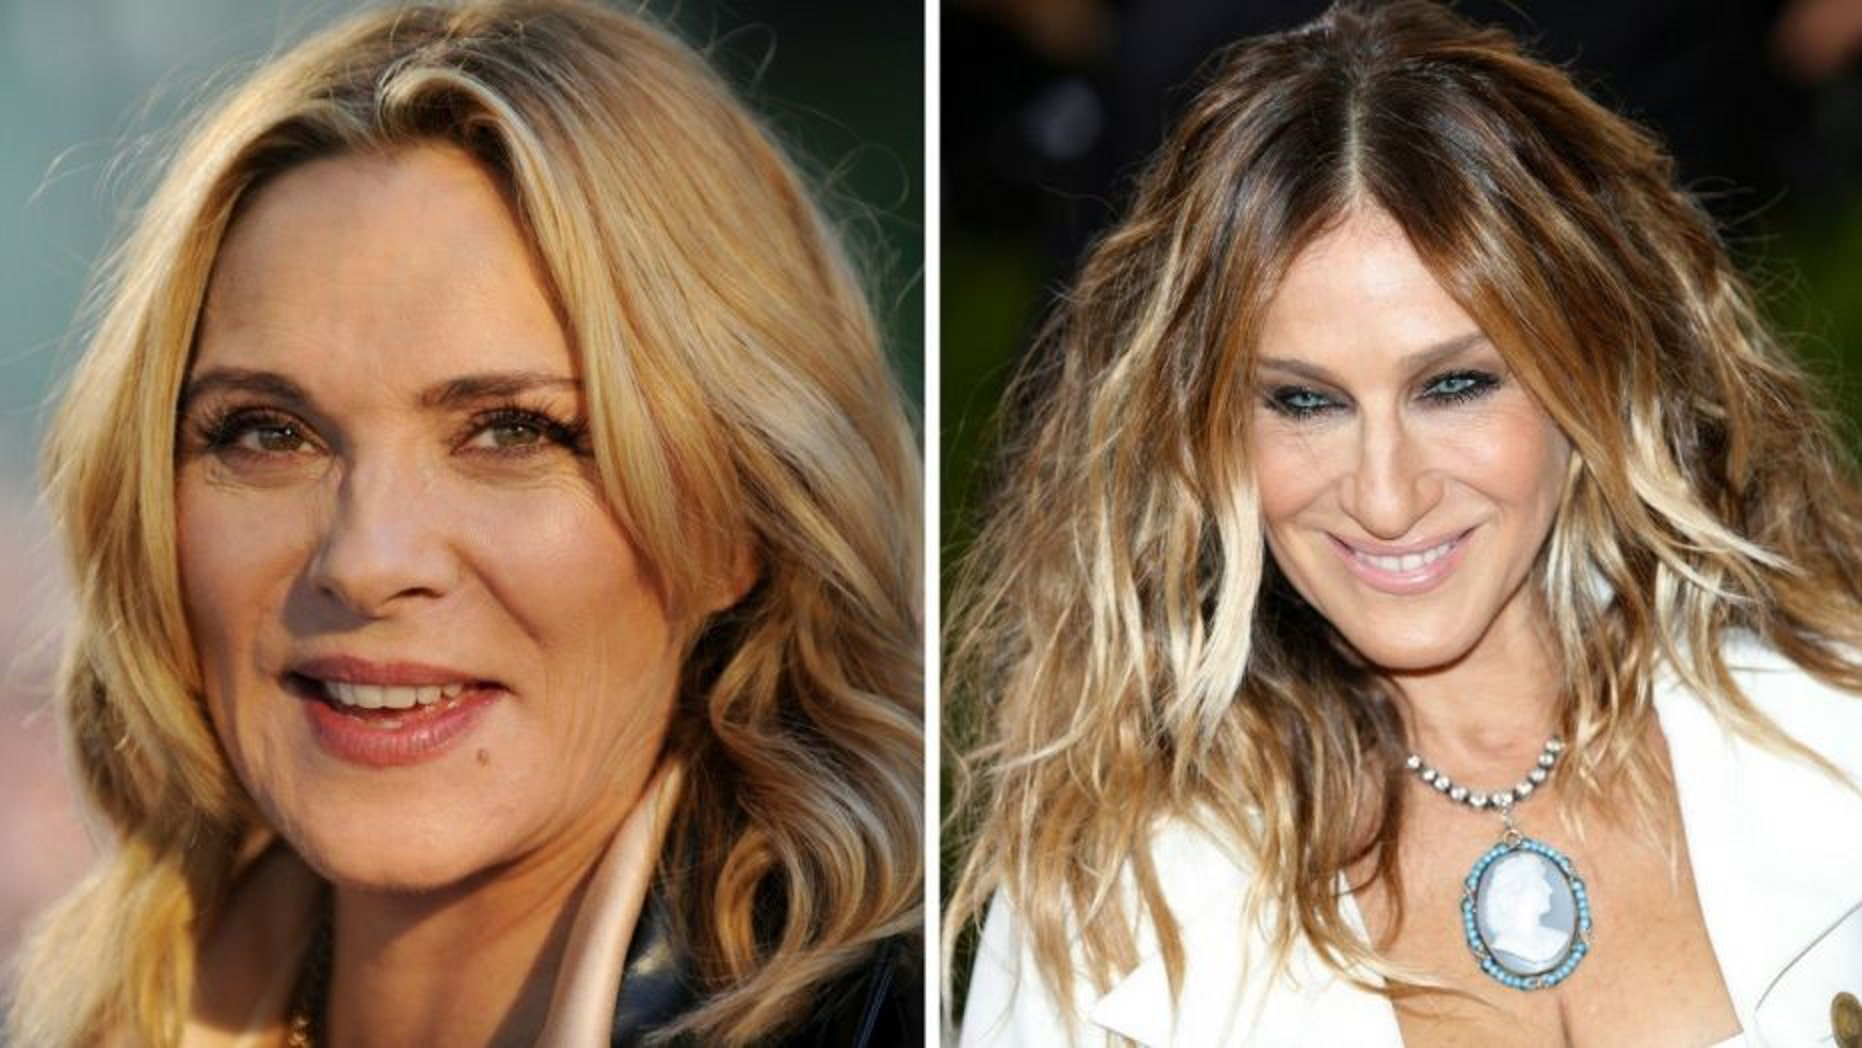 """Sarah Jessica Parker, right, addressed the long-rumored feud between her and former """"Sex and the City"""" co-star Kim Cattrall in a new interview with Extra published on Tuesday."""